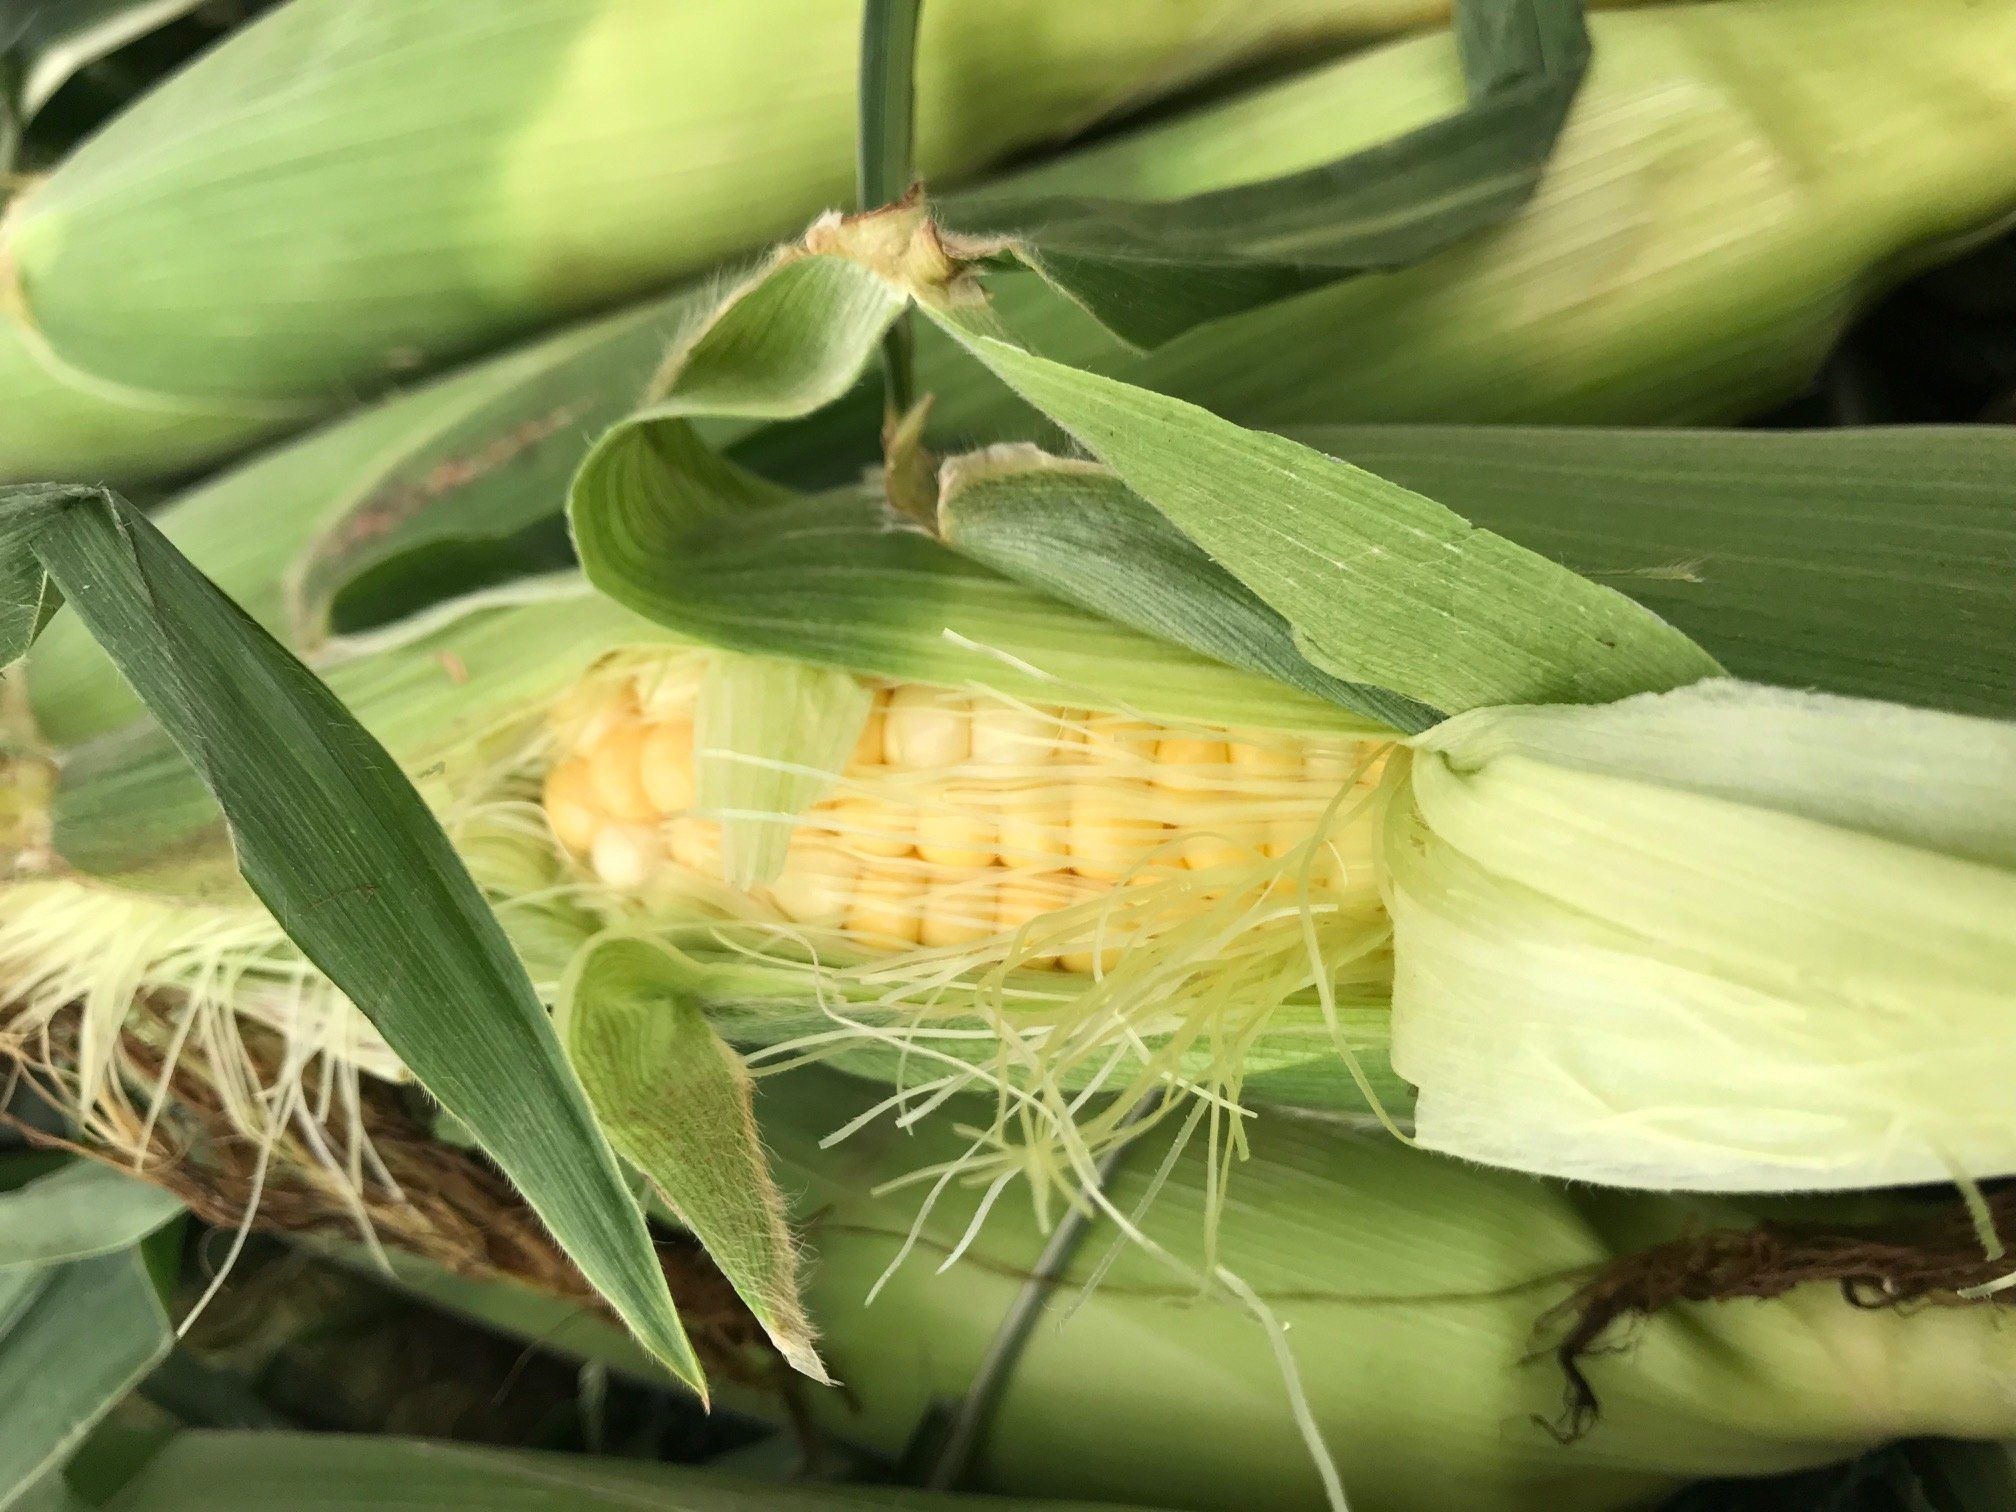 Next Happening: Farm Happenings...mid July, bring on the summer fruit and Corn on the Cob